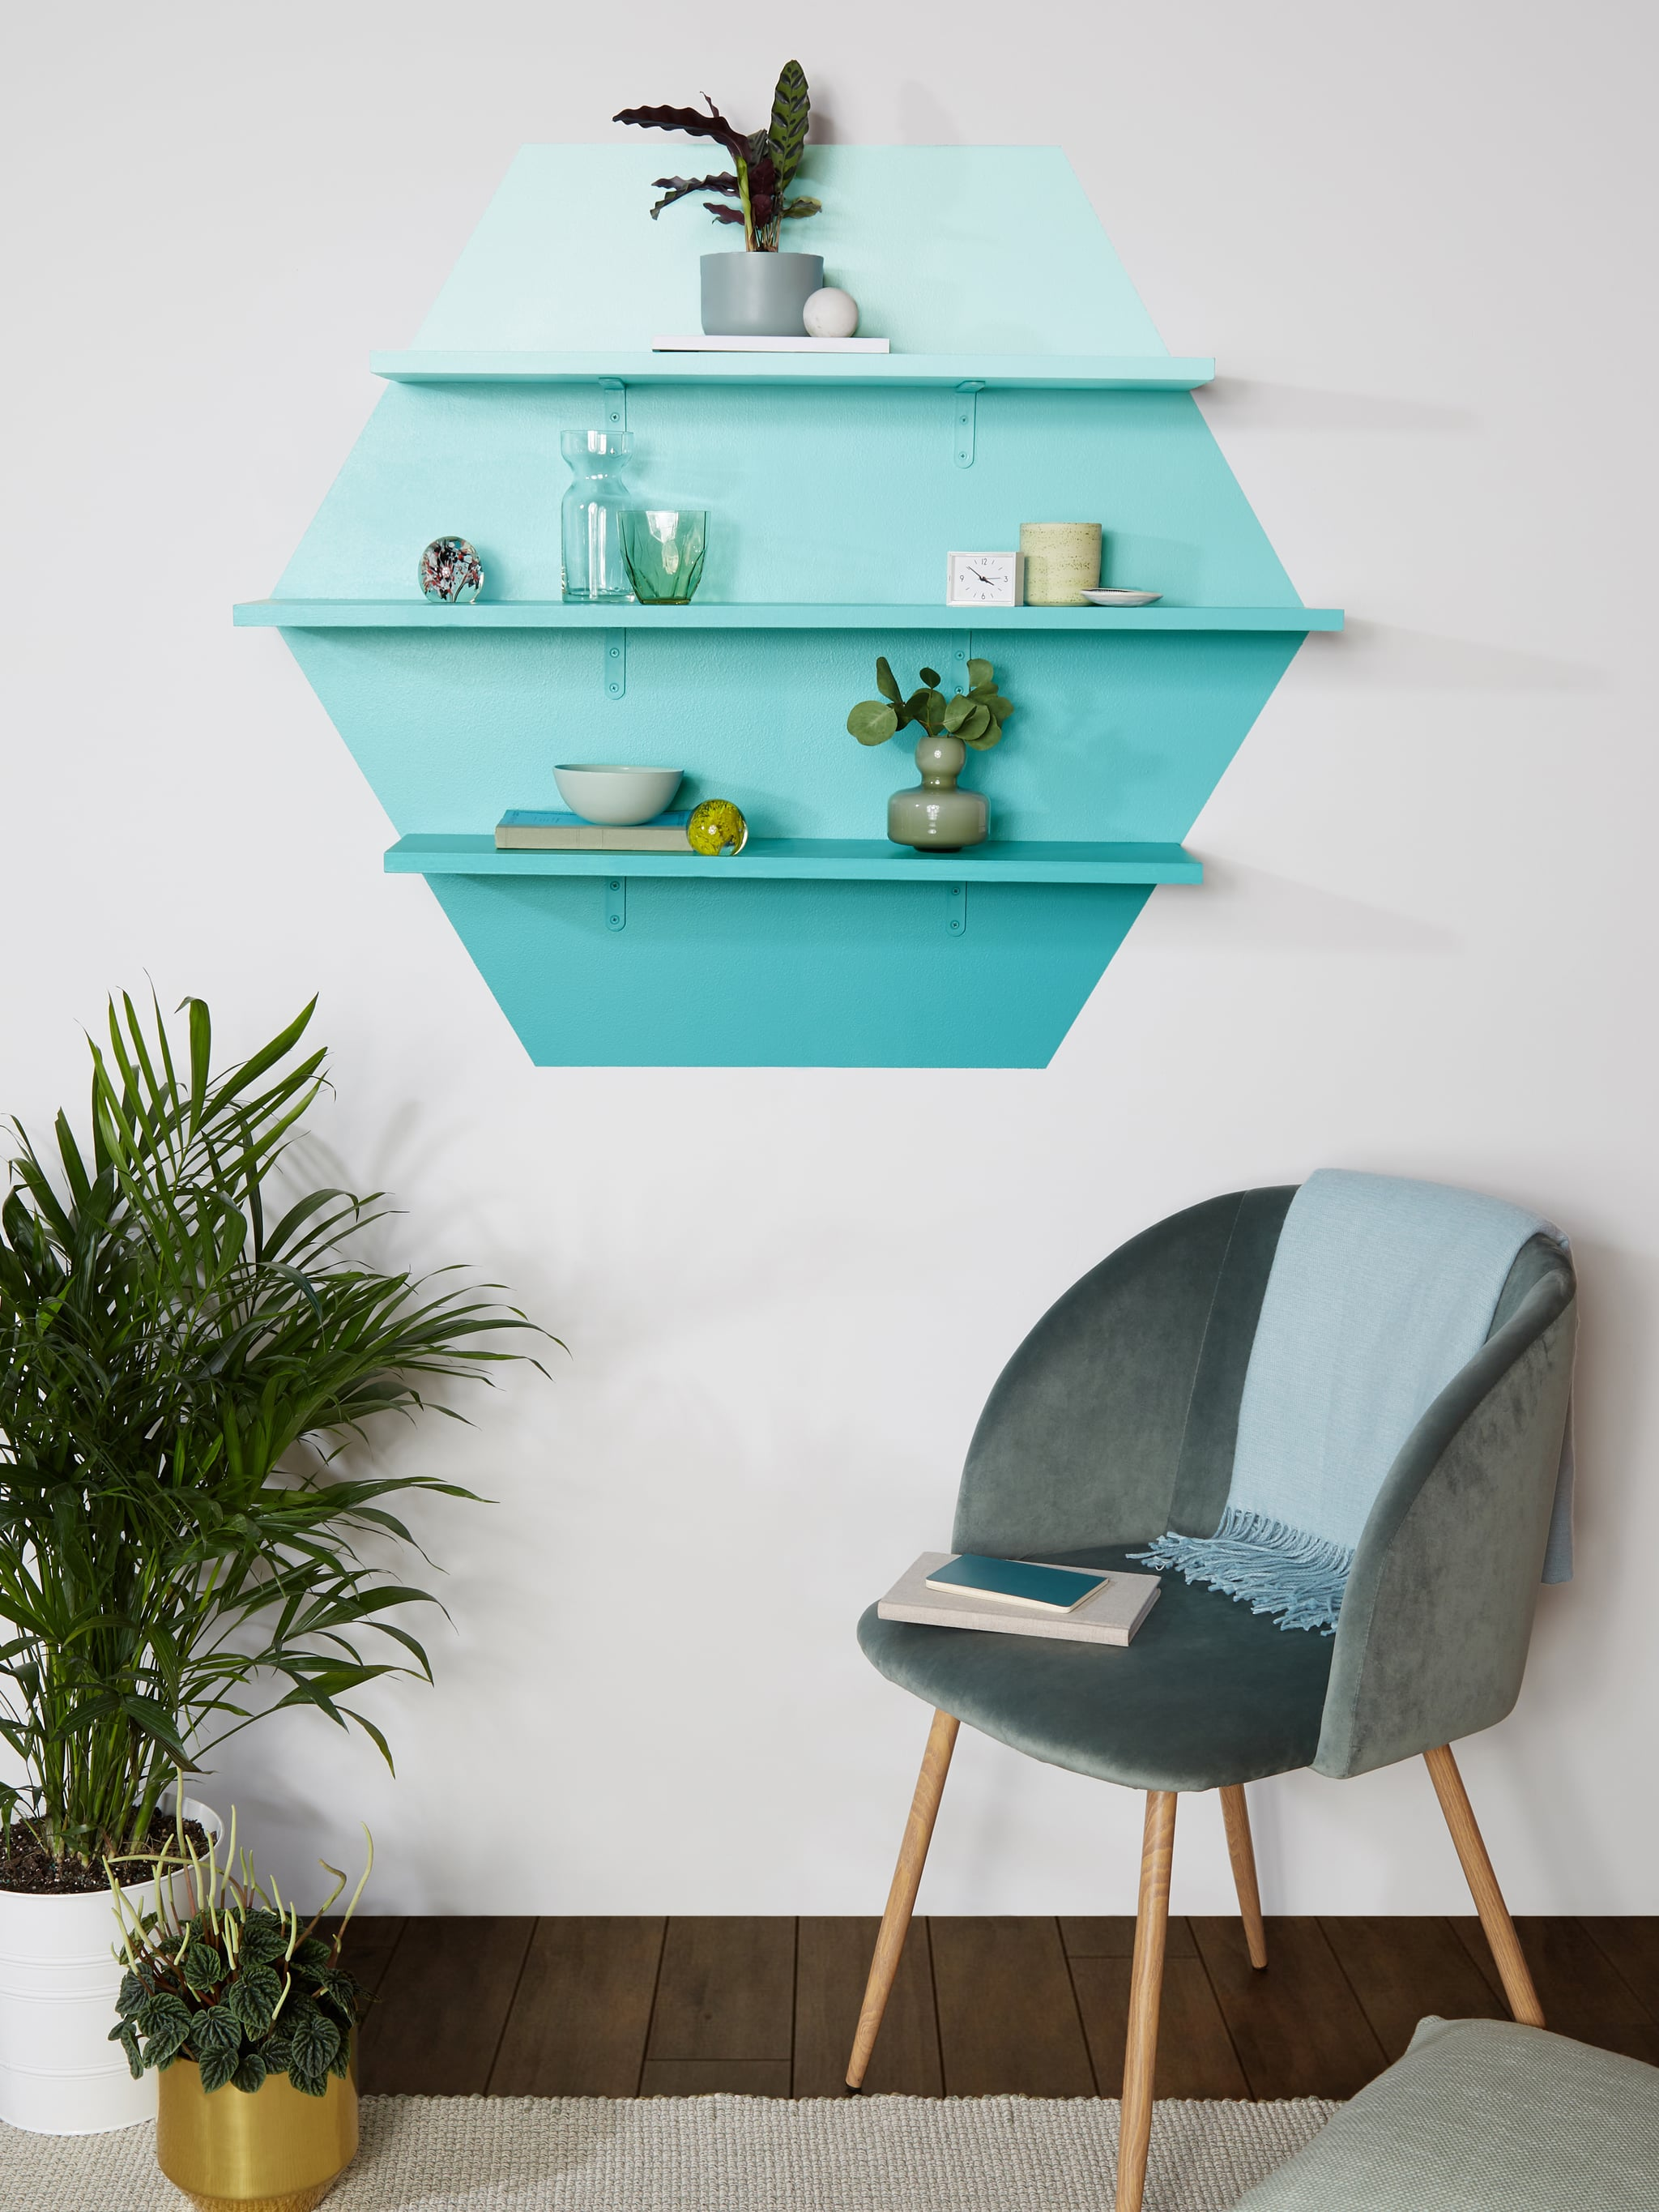 Trendy Ombré Shelving DIY | POPSUGAR Smart Living